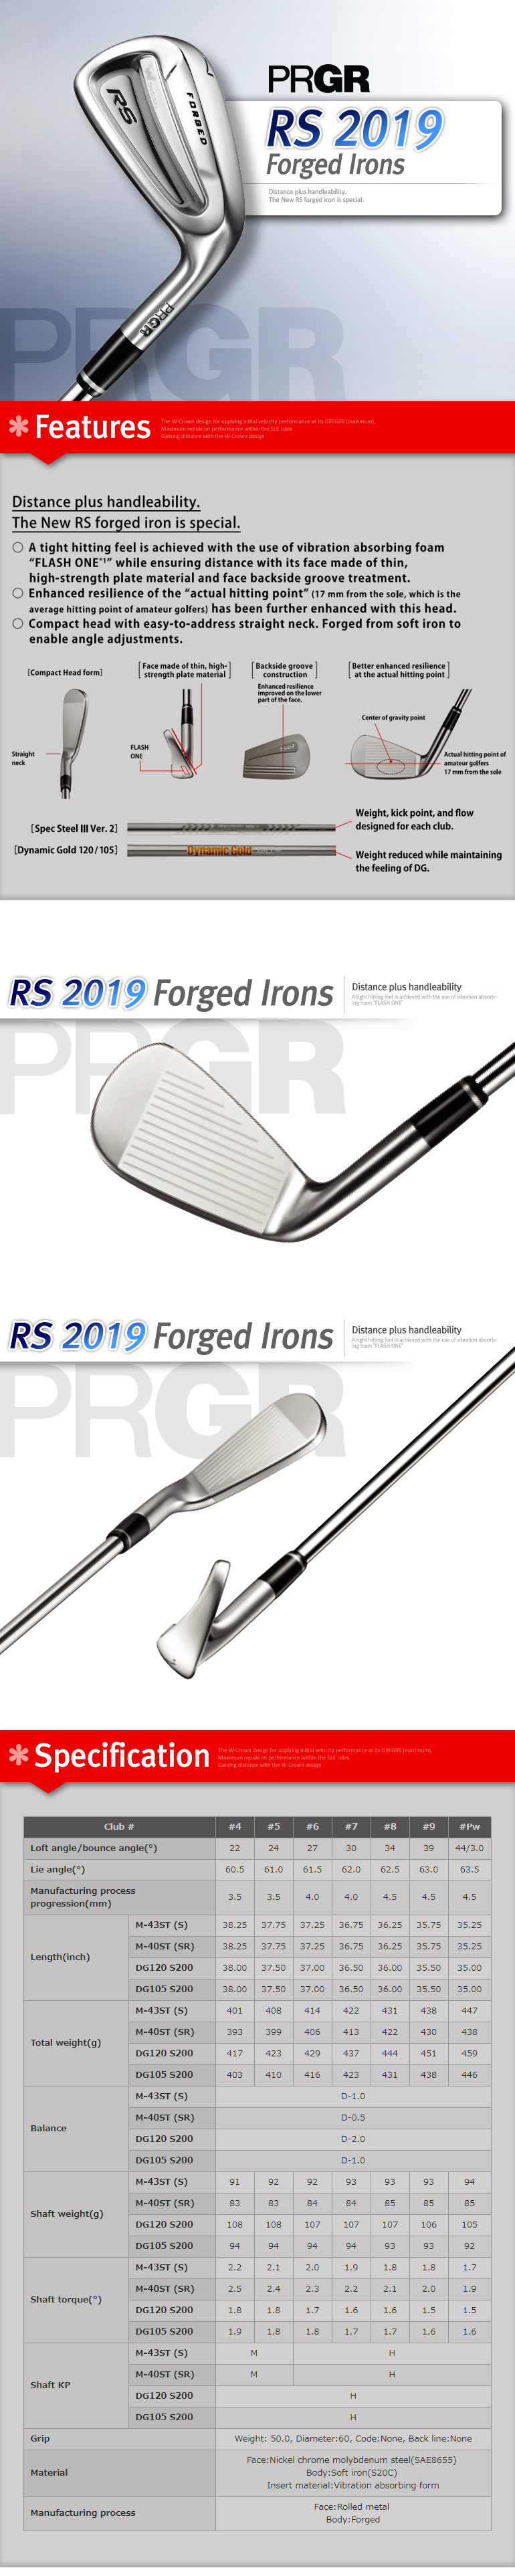 RS Forged 2019